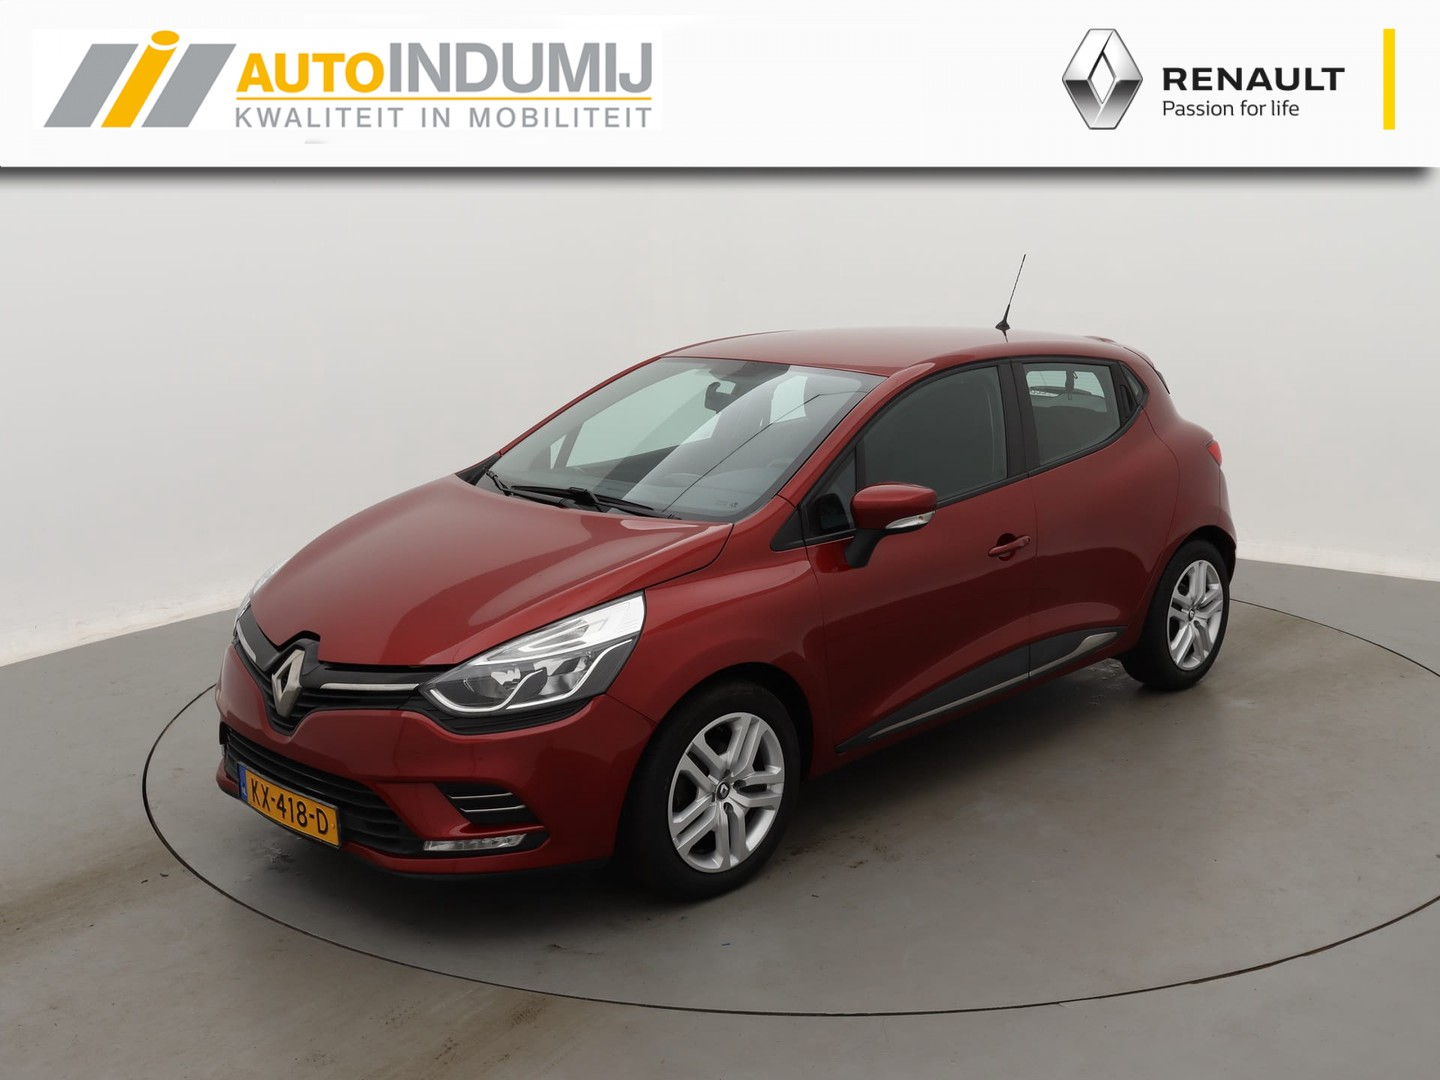 Renault Clio Tce 90 zen  / navi / airco / led dagrijverlichting / cruise control